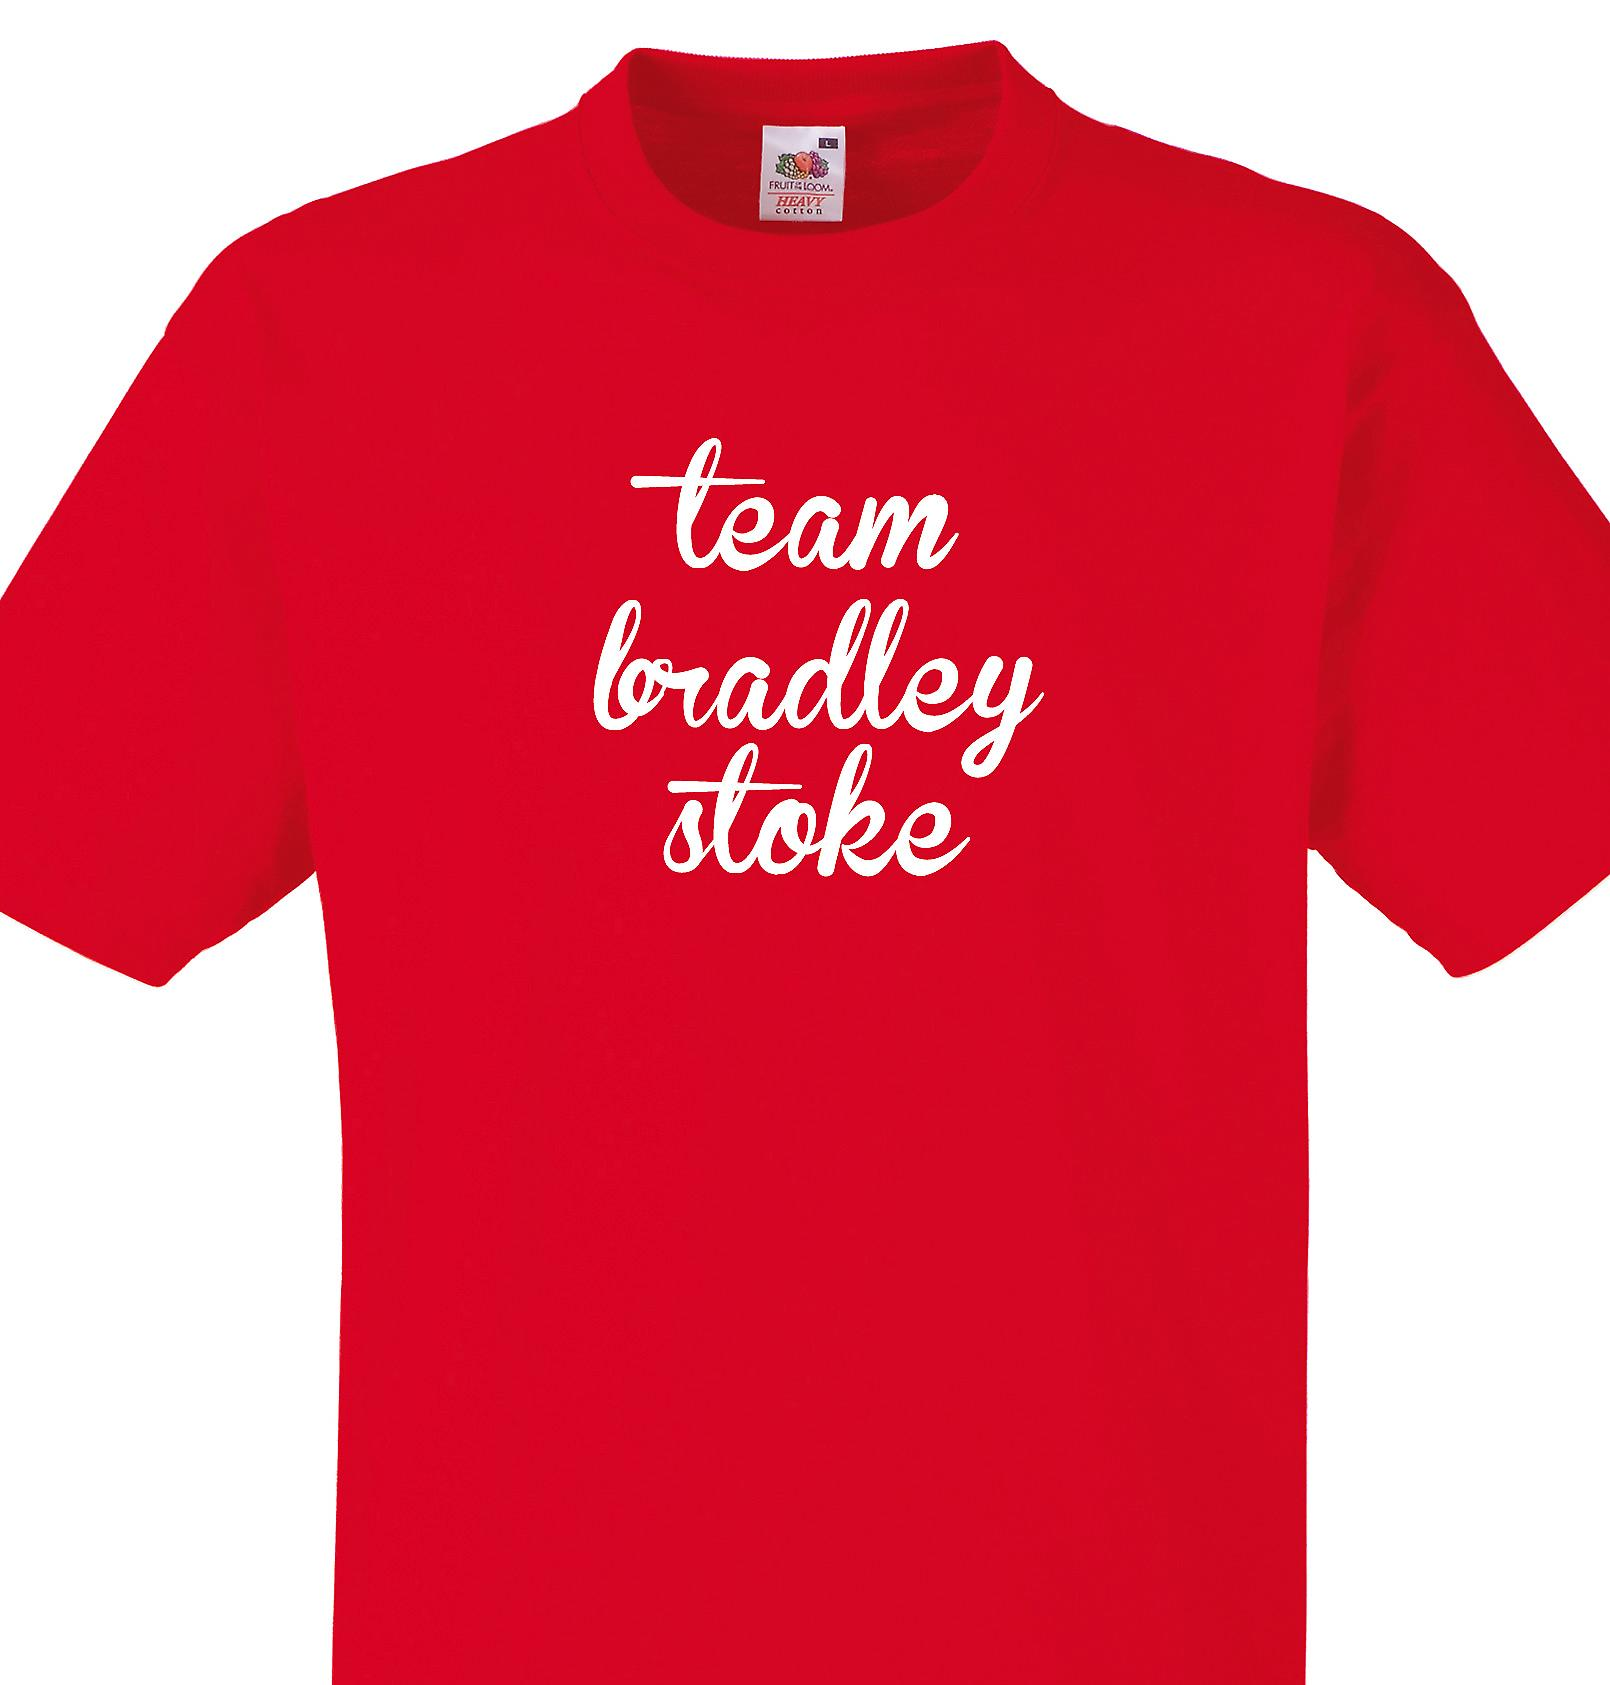 Team Bradley stoke Red T shirt